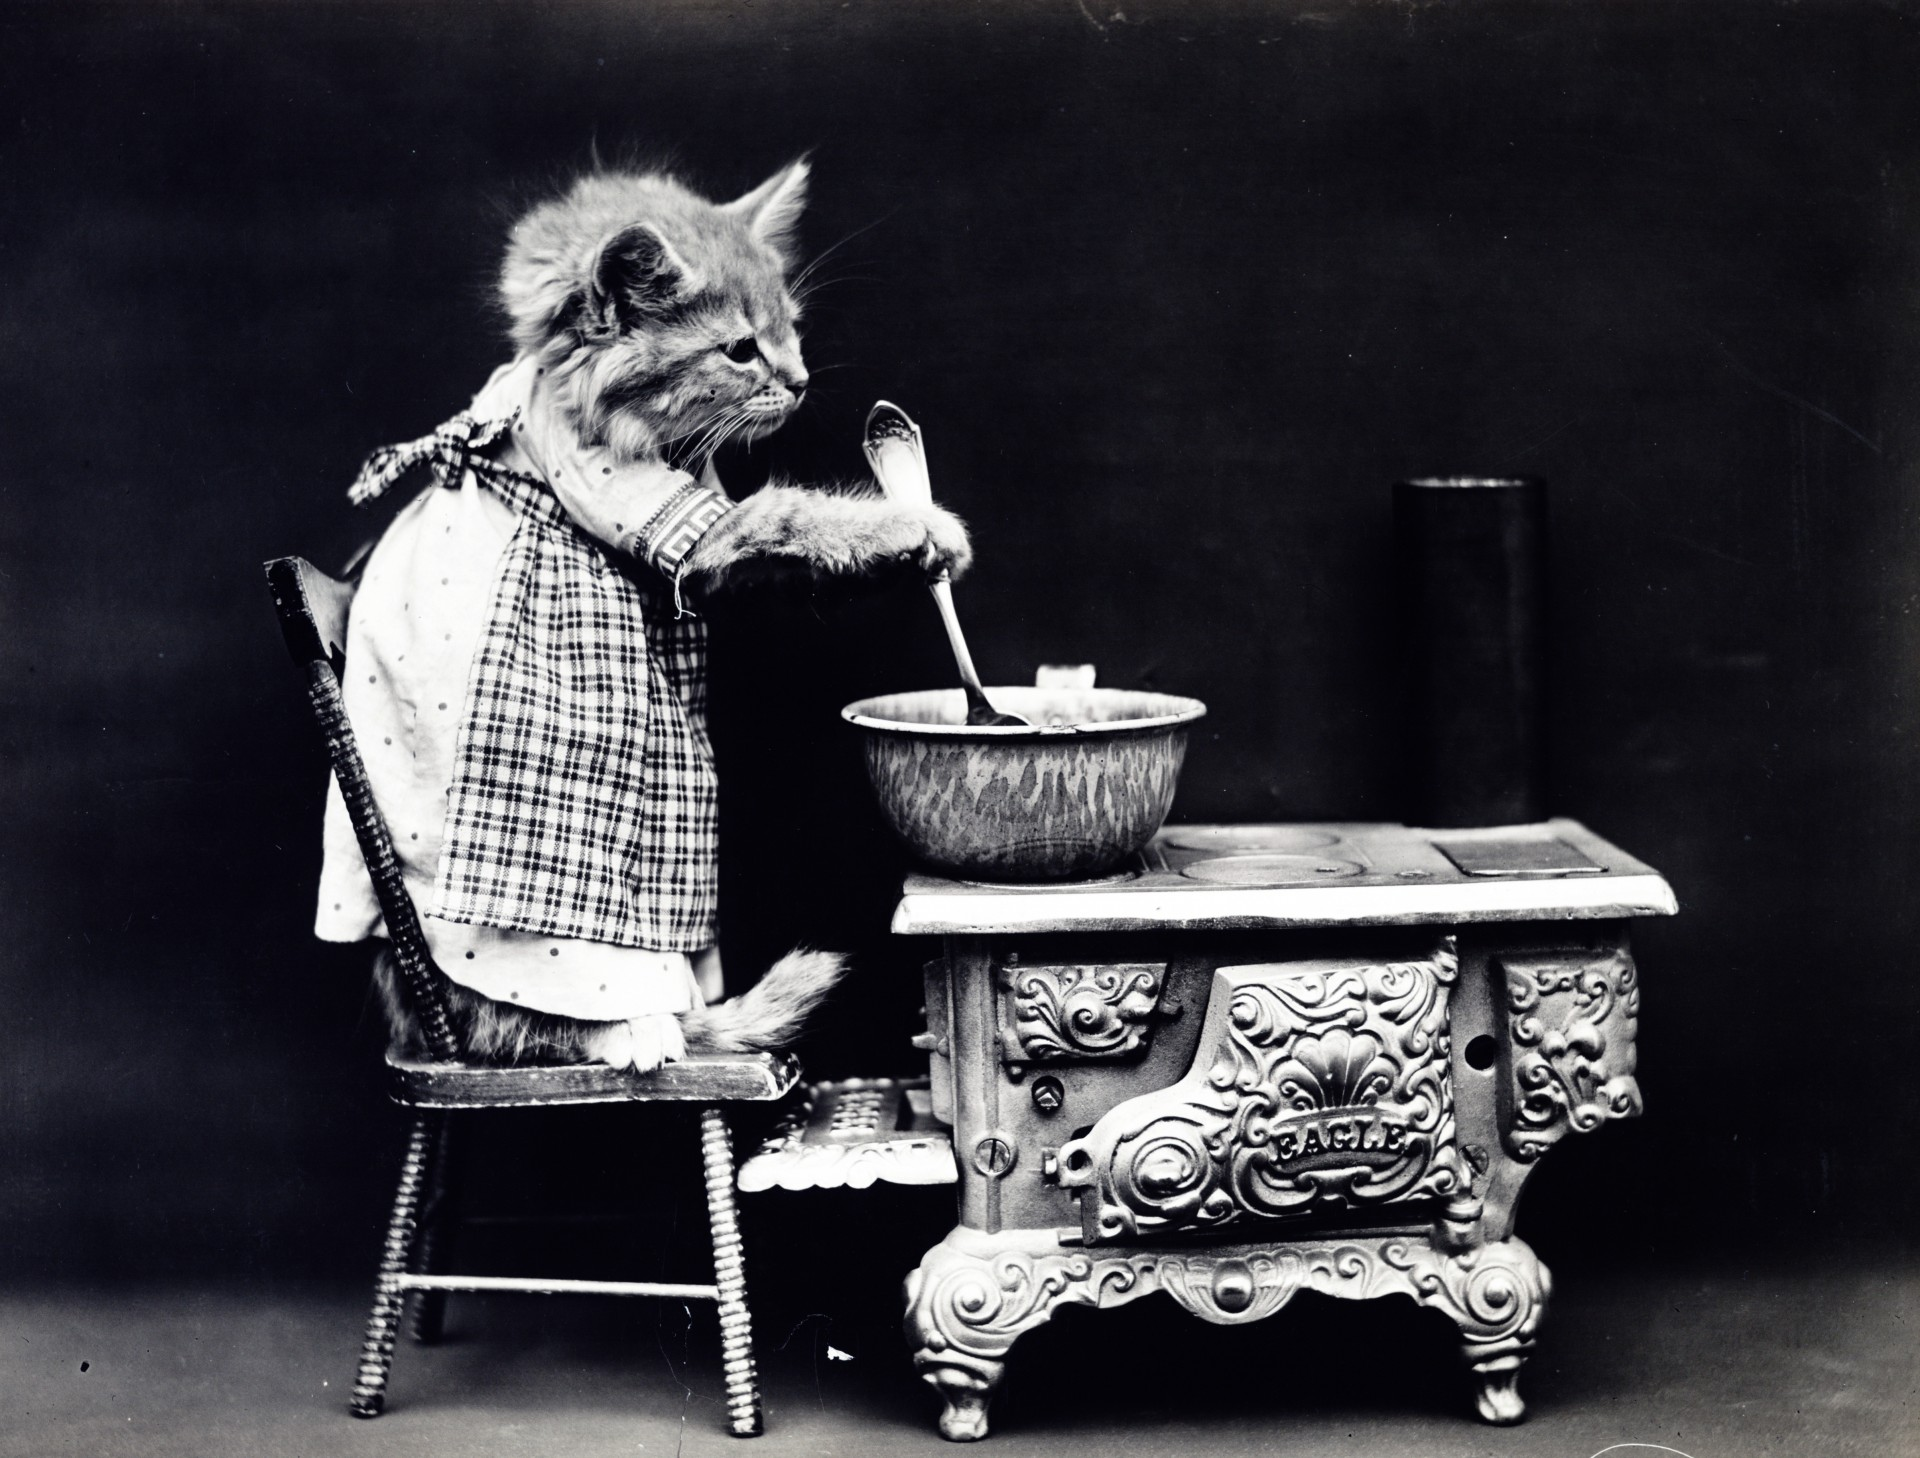 Cat Dressed Vintage Photo Free Stock Photo Public Domain